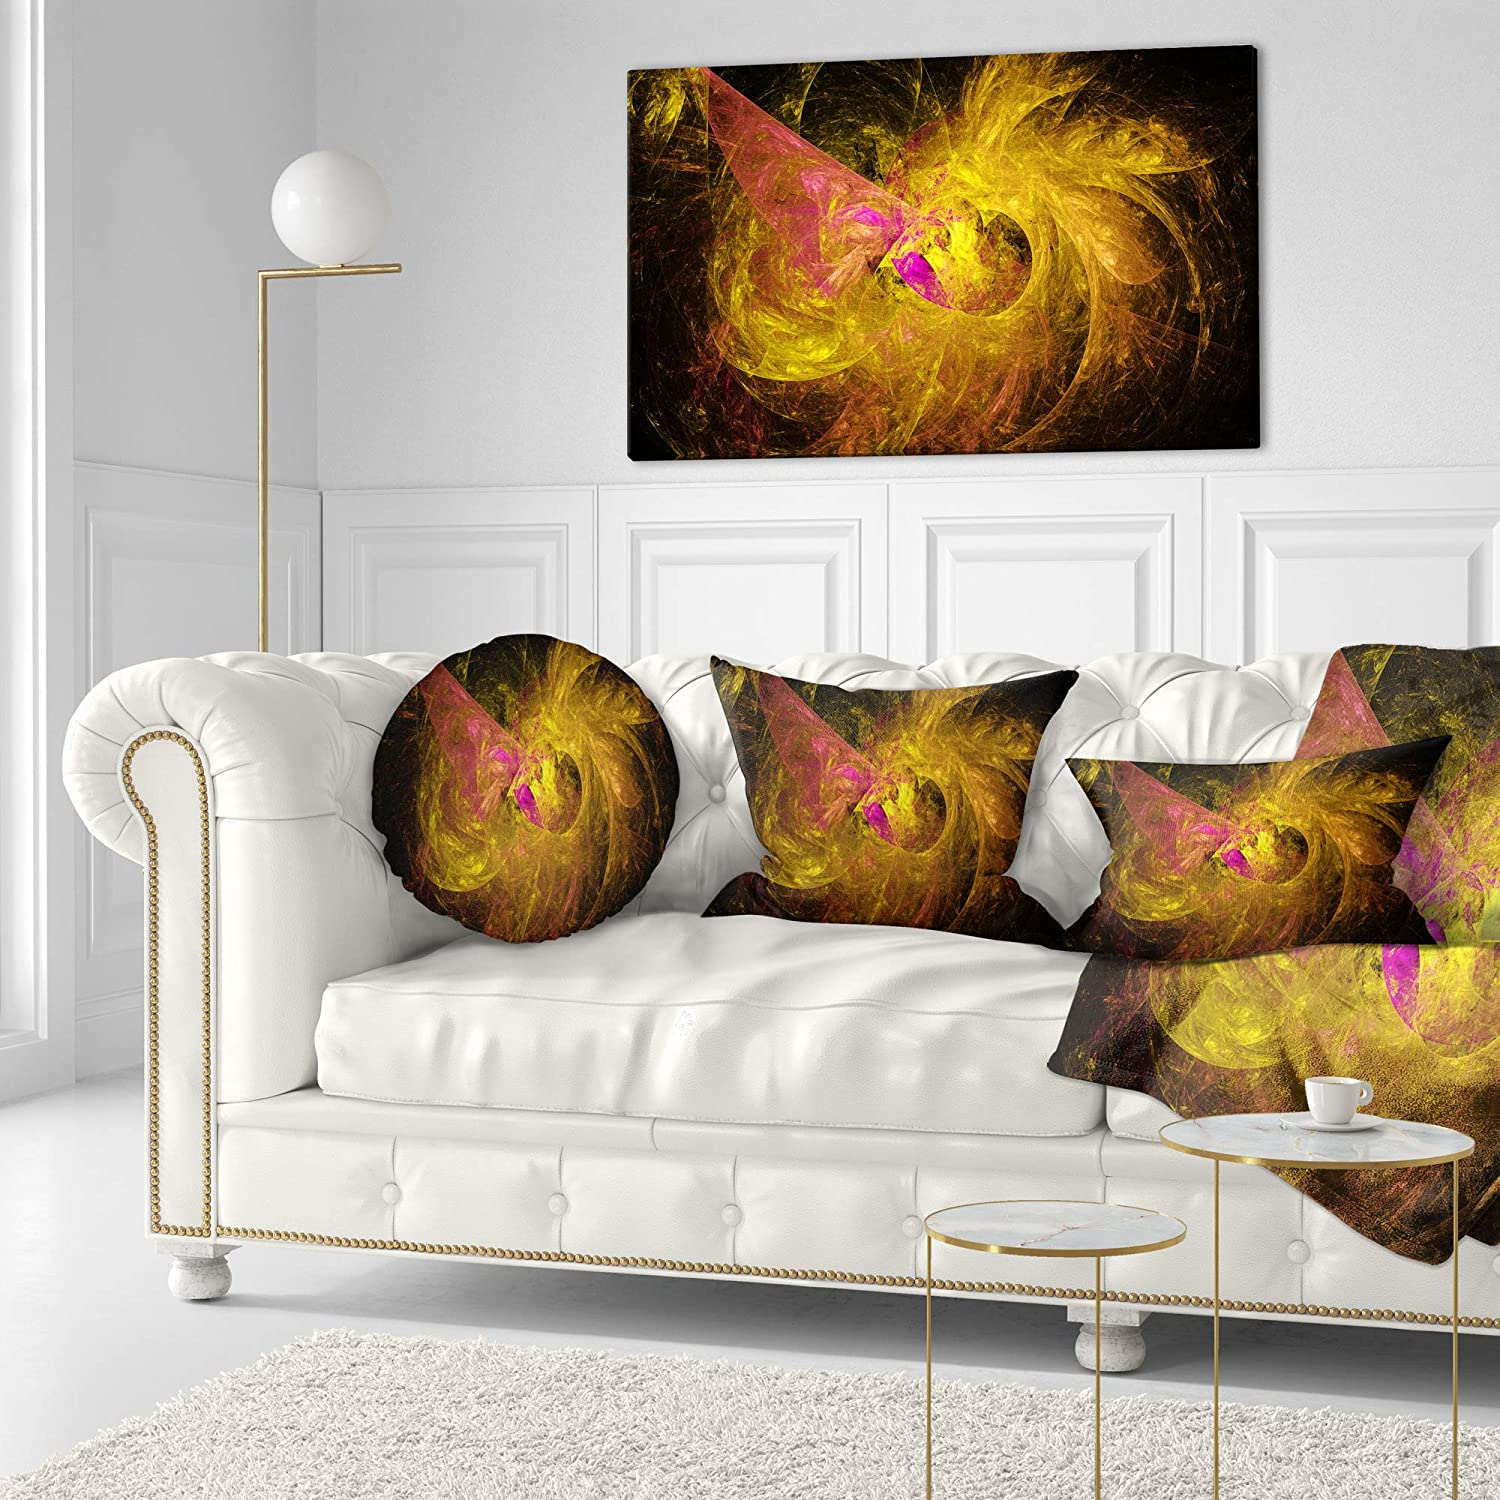 Insert Printed On Both Side Designart CU15927-20-20-C Golden Fractal Illustration Abstract Round Cushion Cover for Living Room Sofa Throw Pillow 20